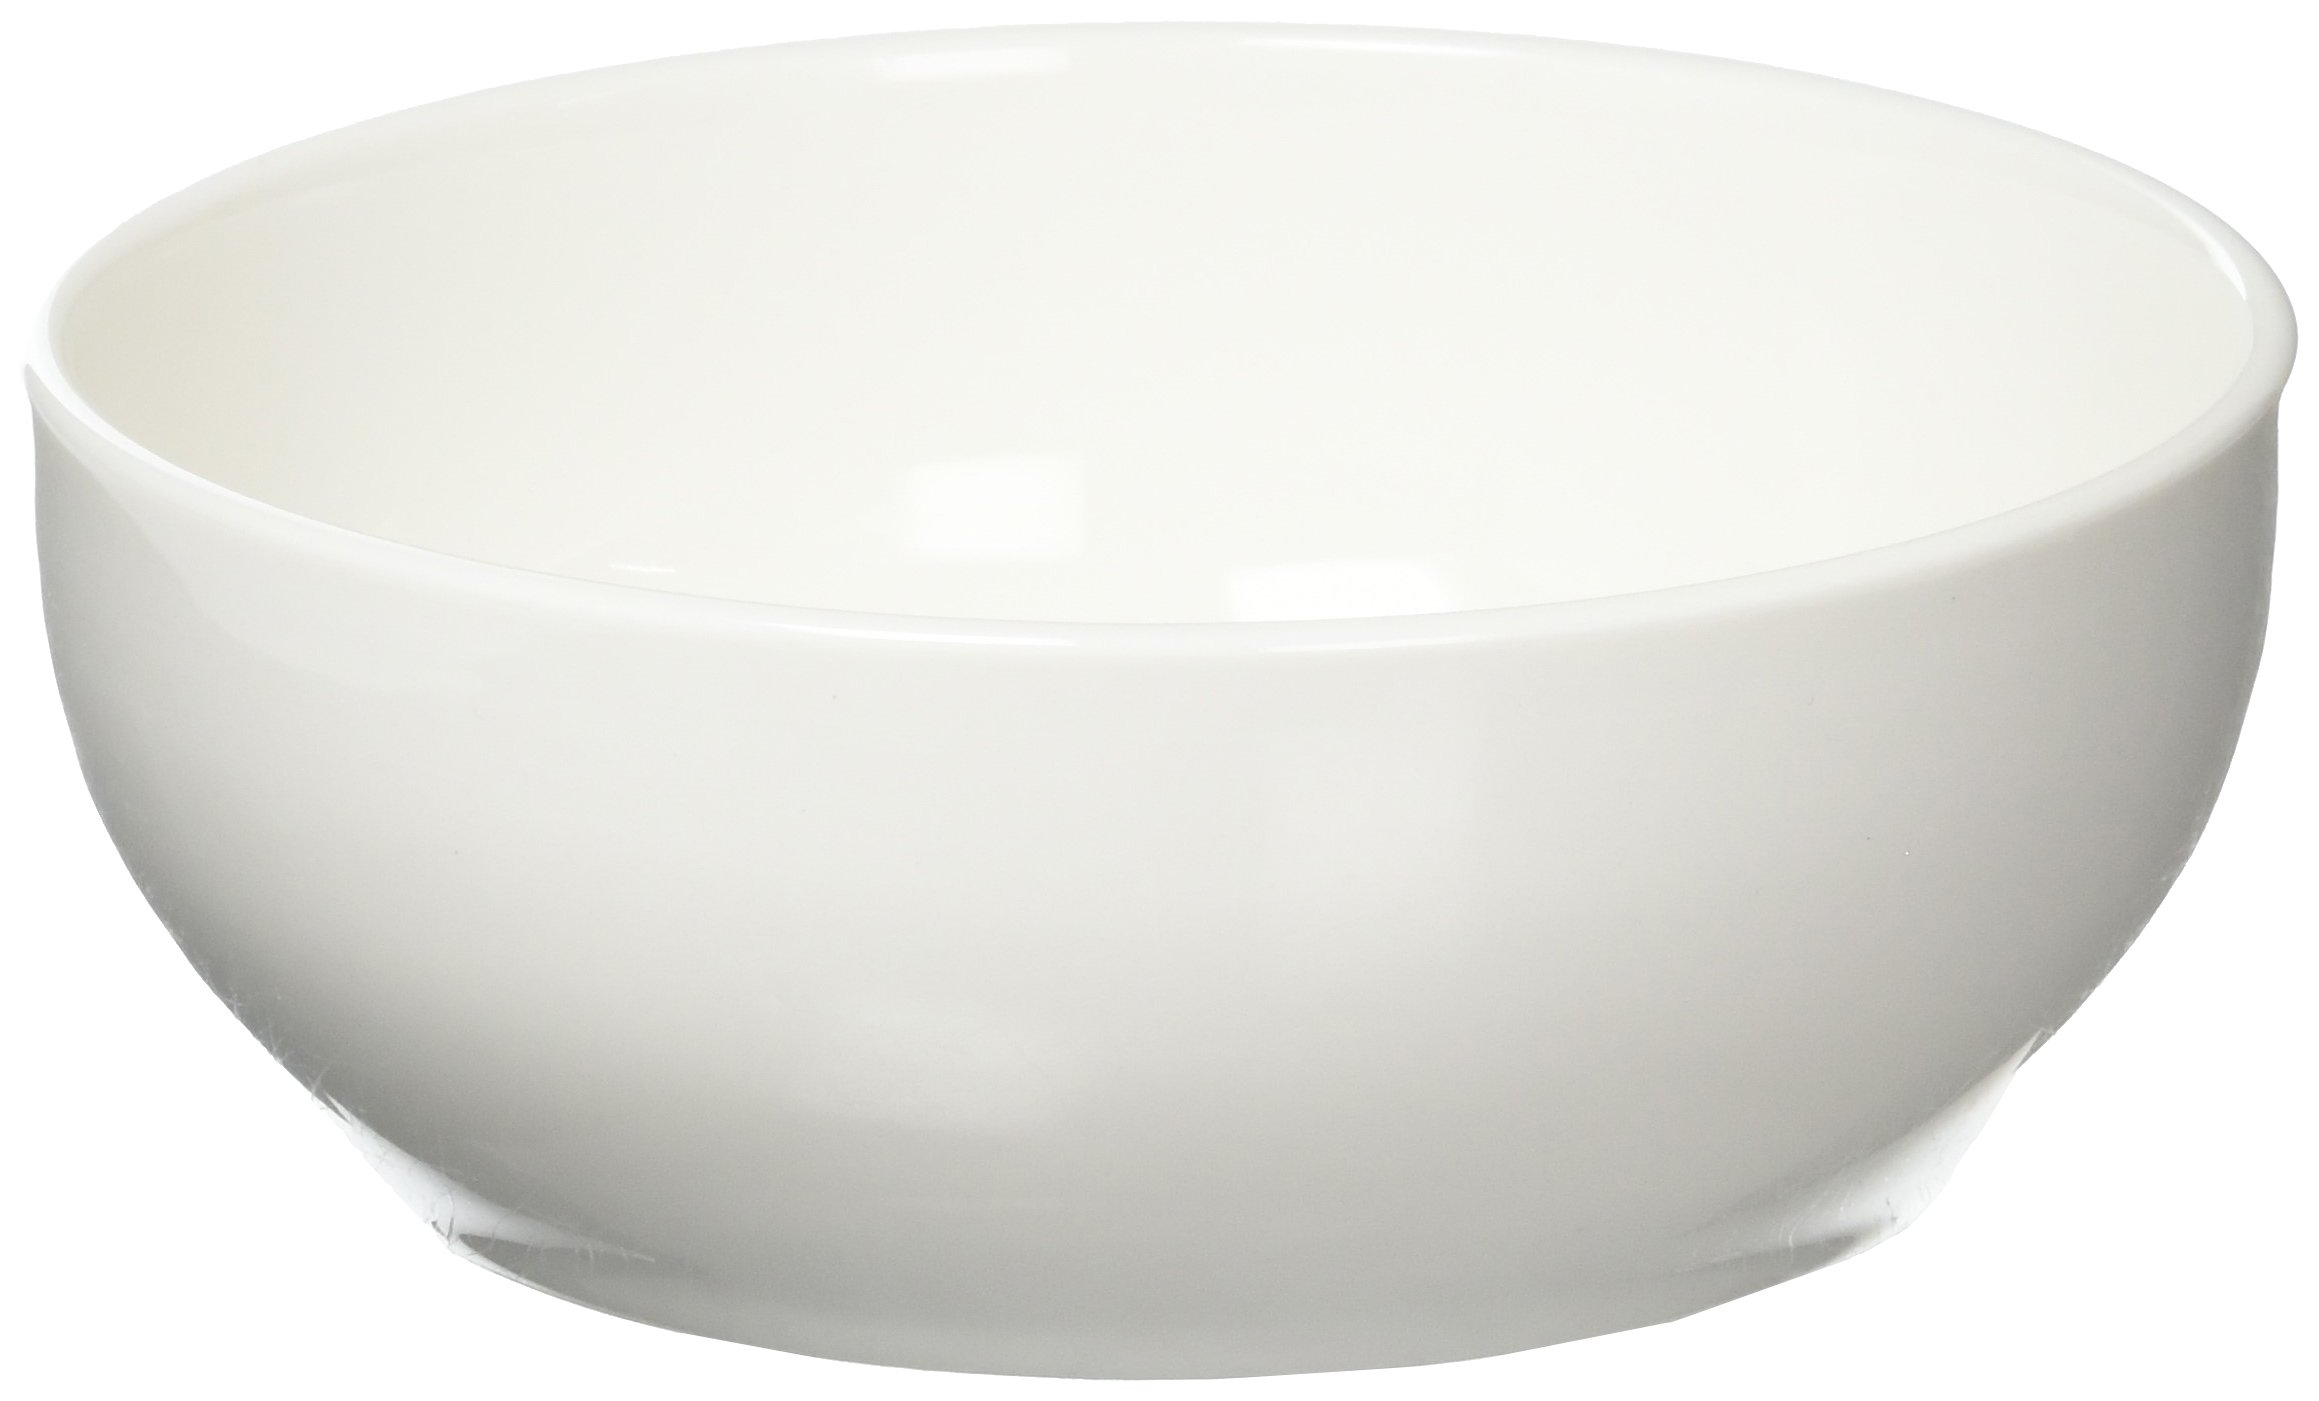 Maxwell and Williams Basics Nut Bowl, 4.5-Inch, White